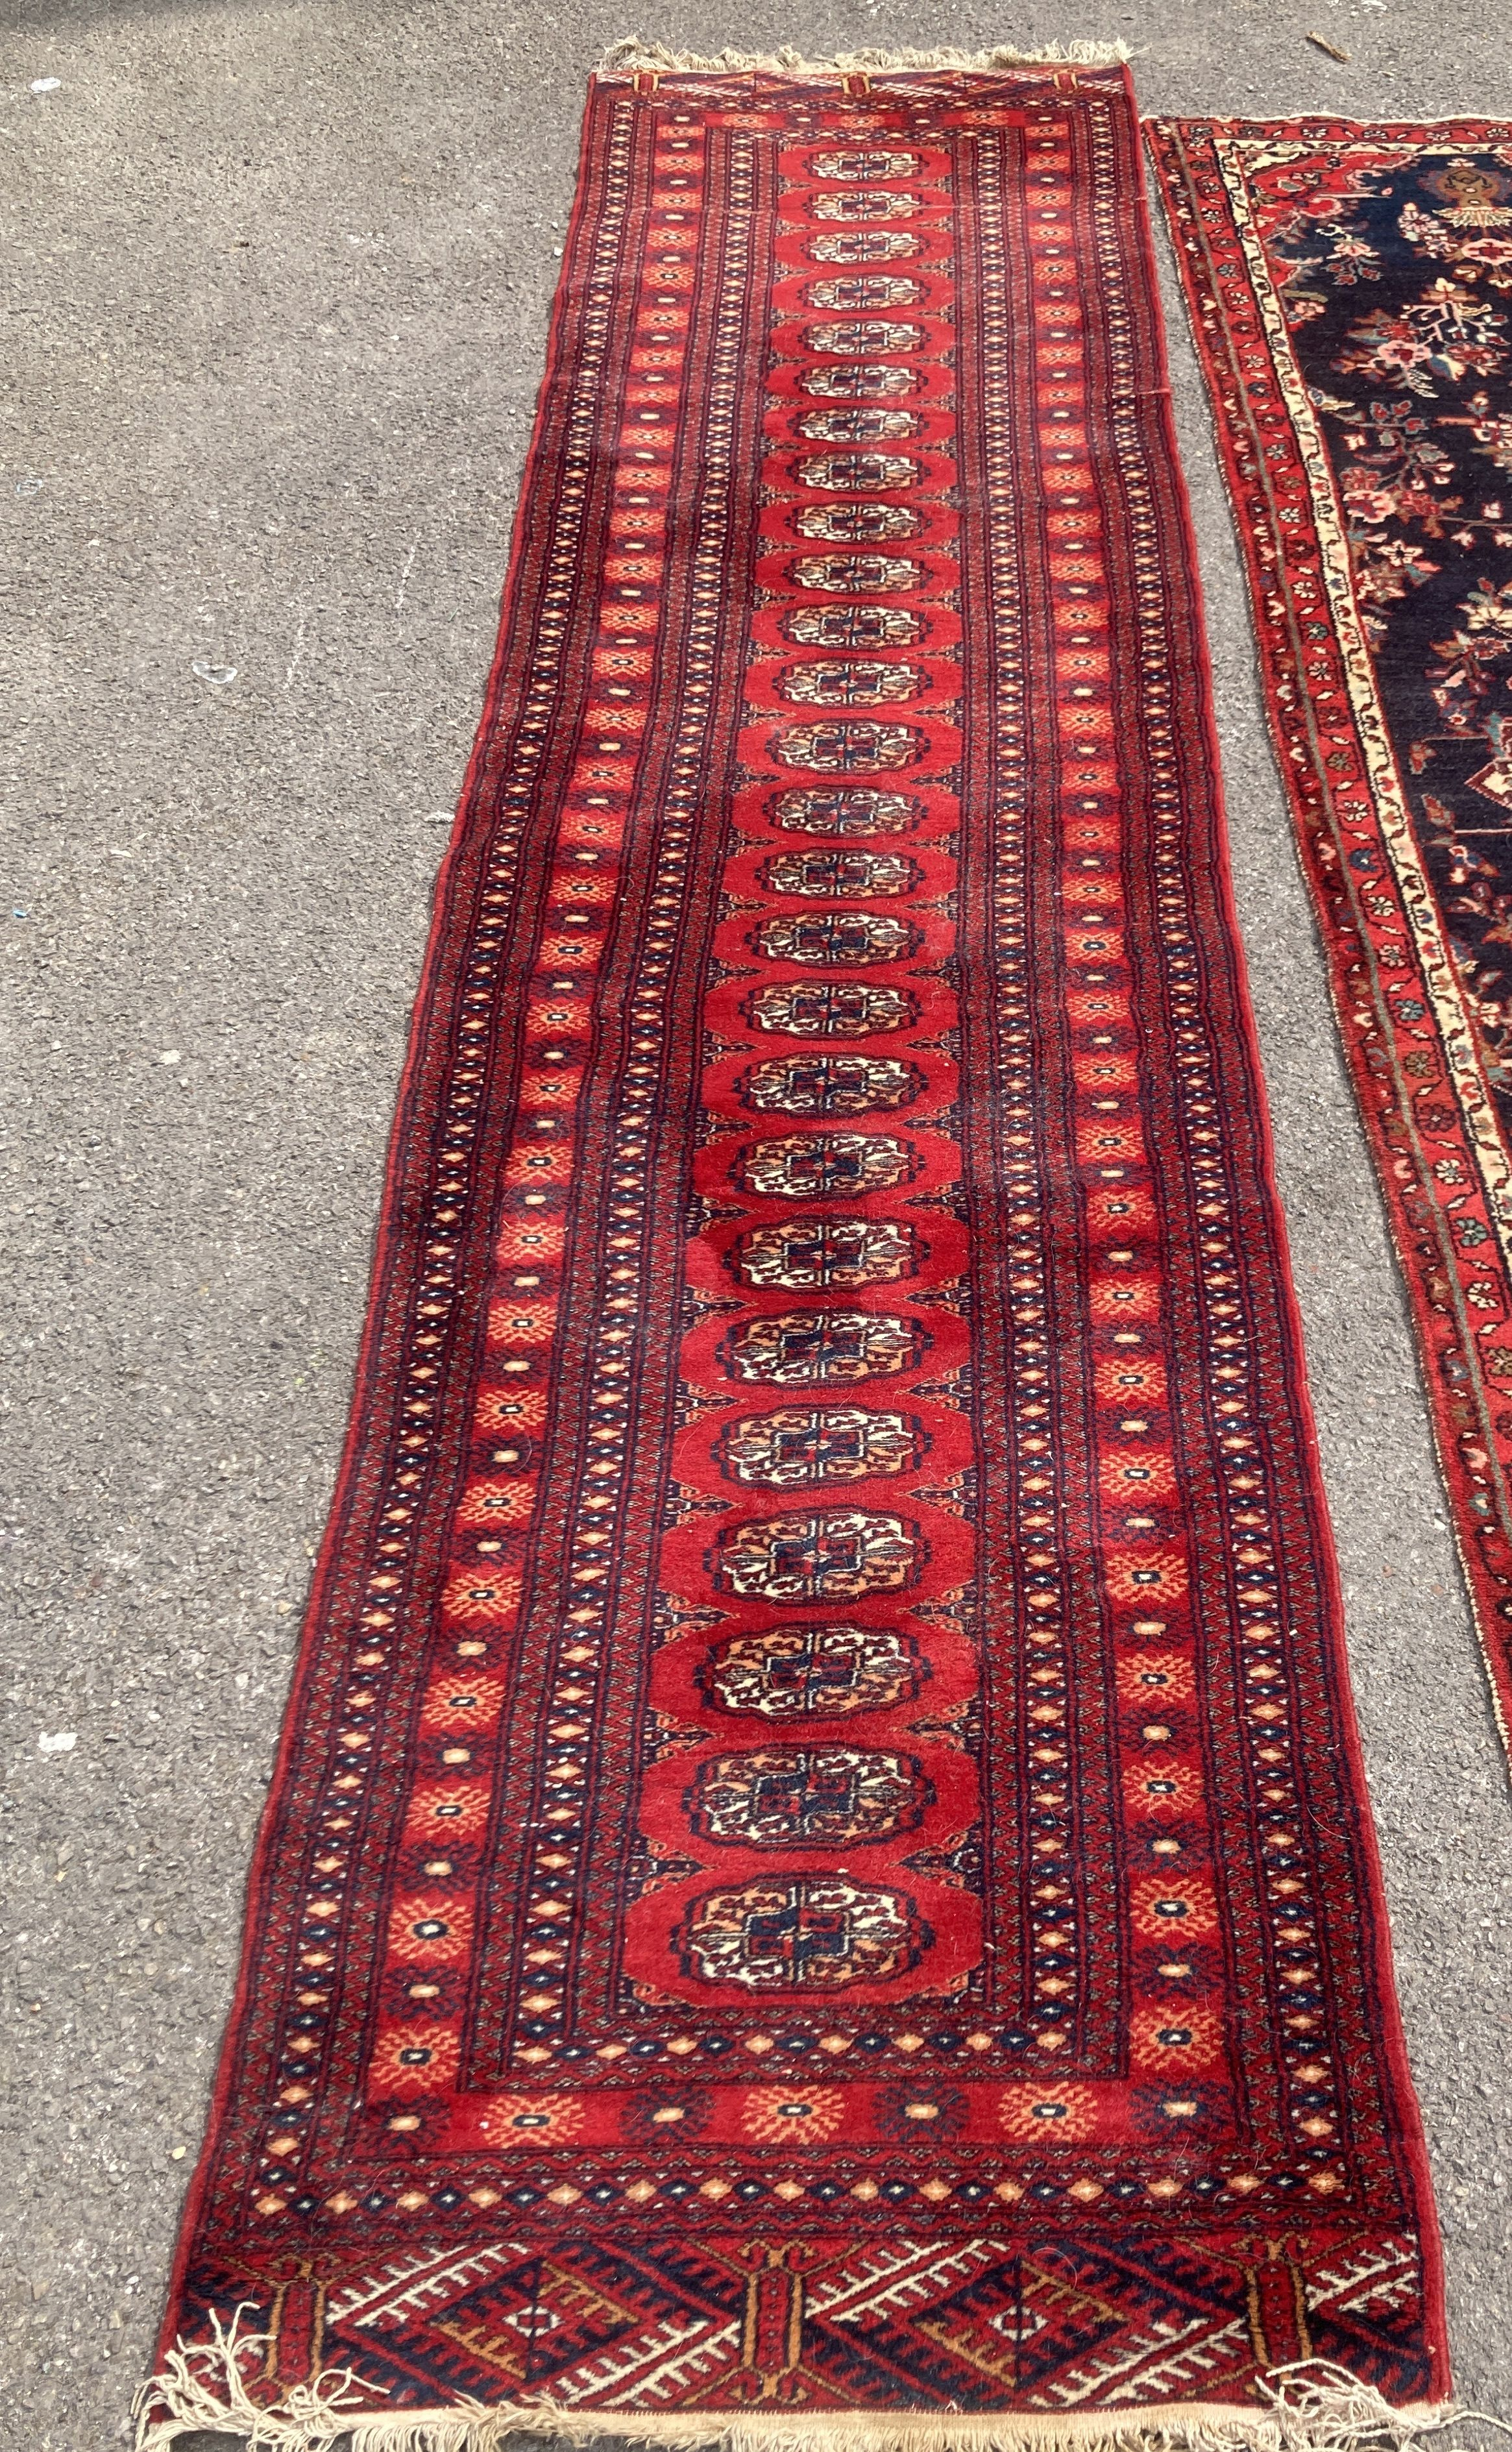 A Bokhara red ground runner, 305 x 80cm, together with a smaller Kashan style rug - Image 2 of 3